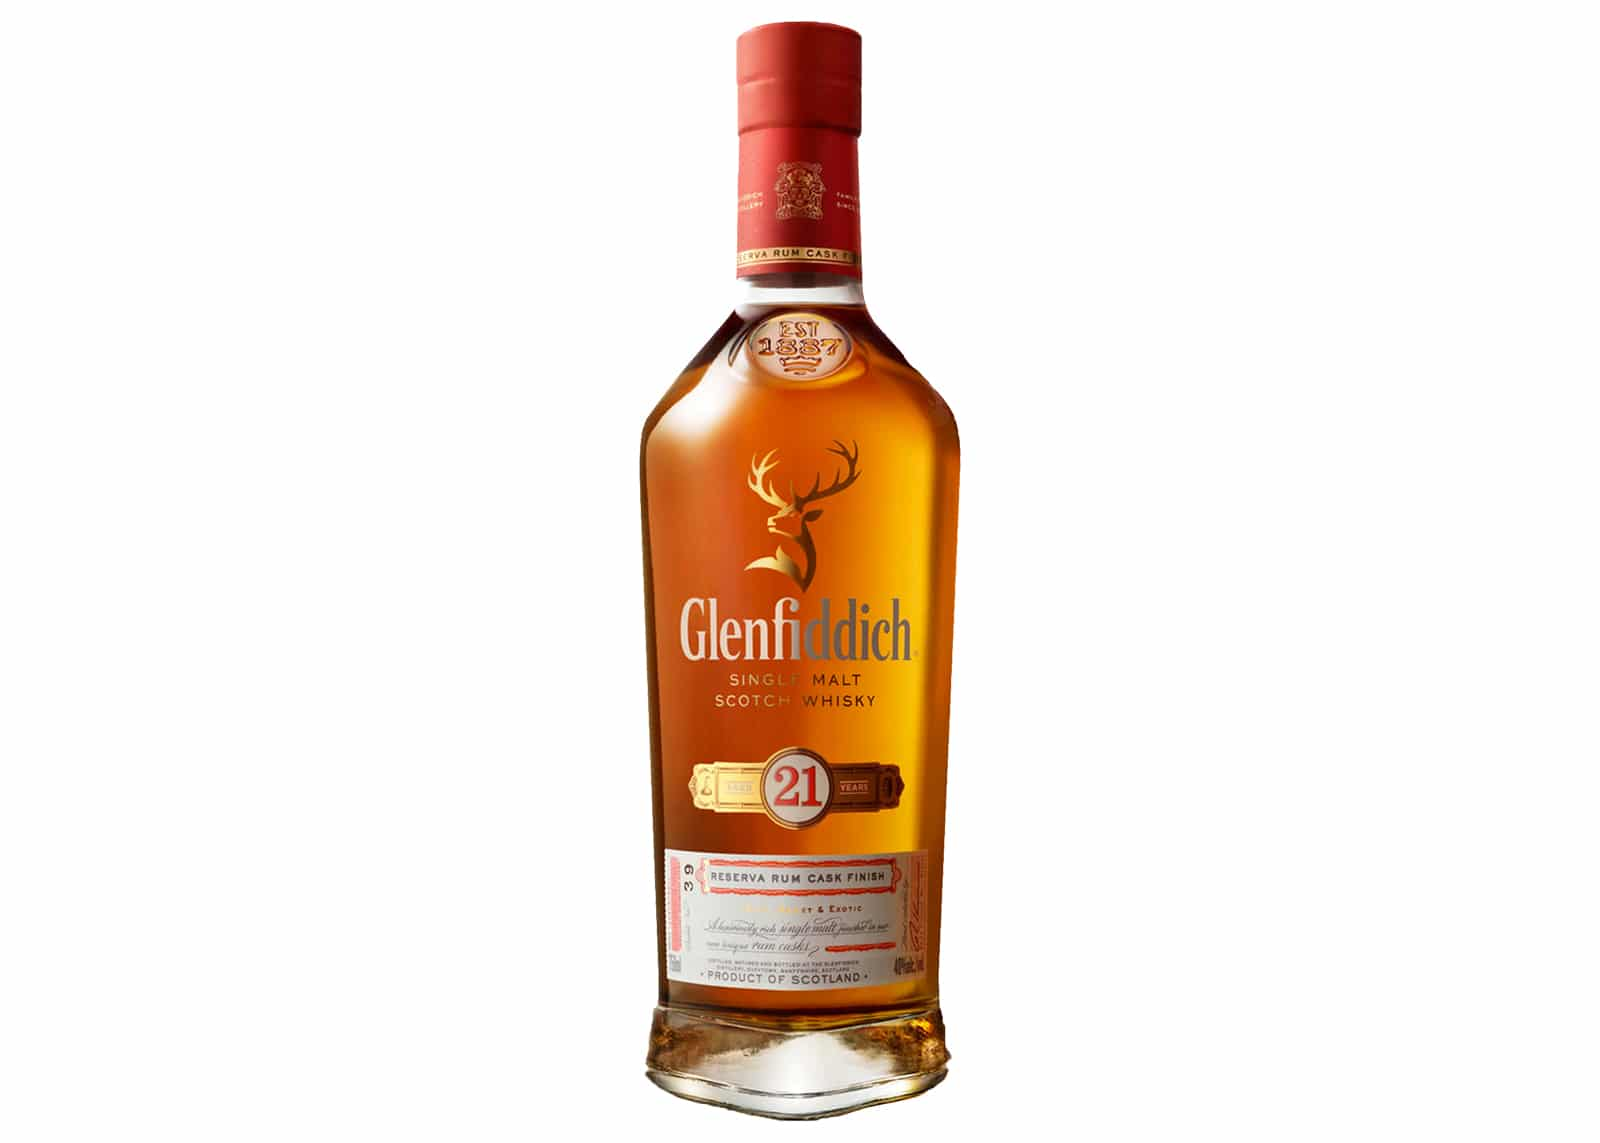 Glenfiddich-Aged-21-Years